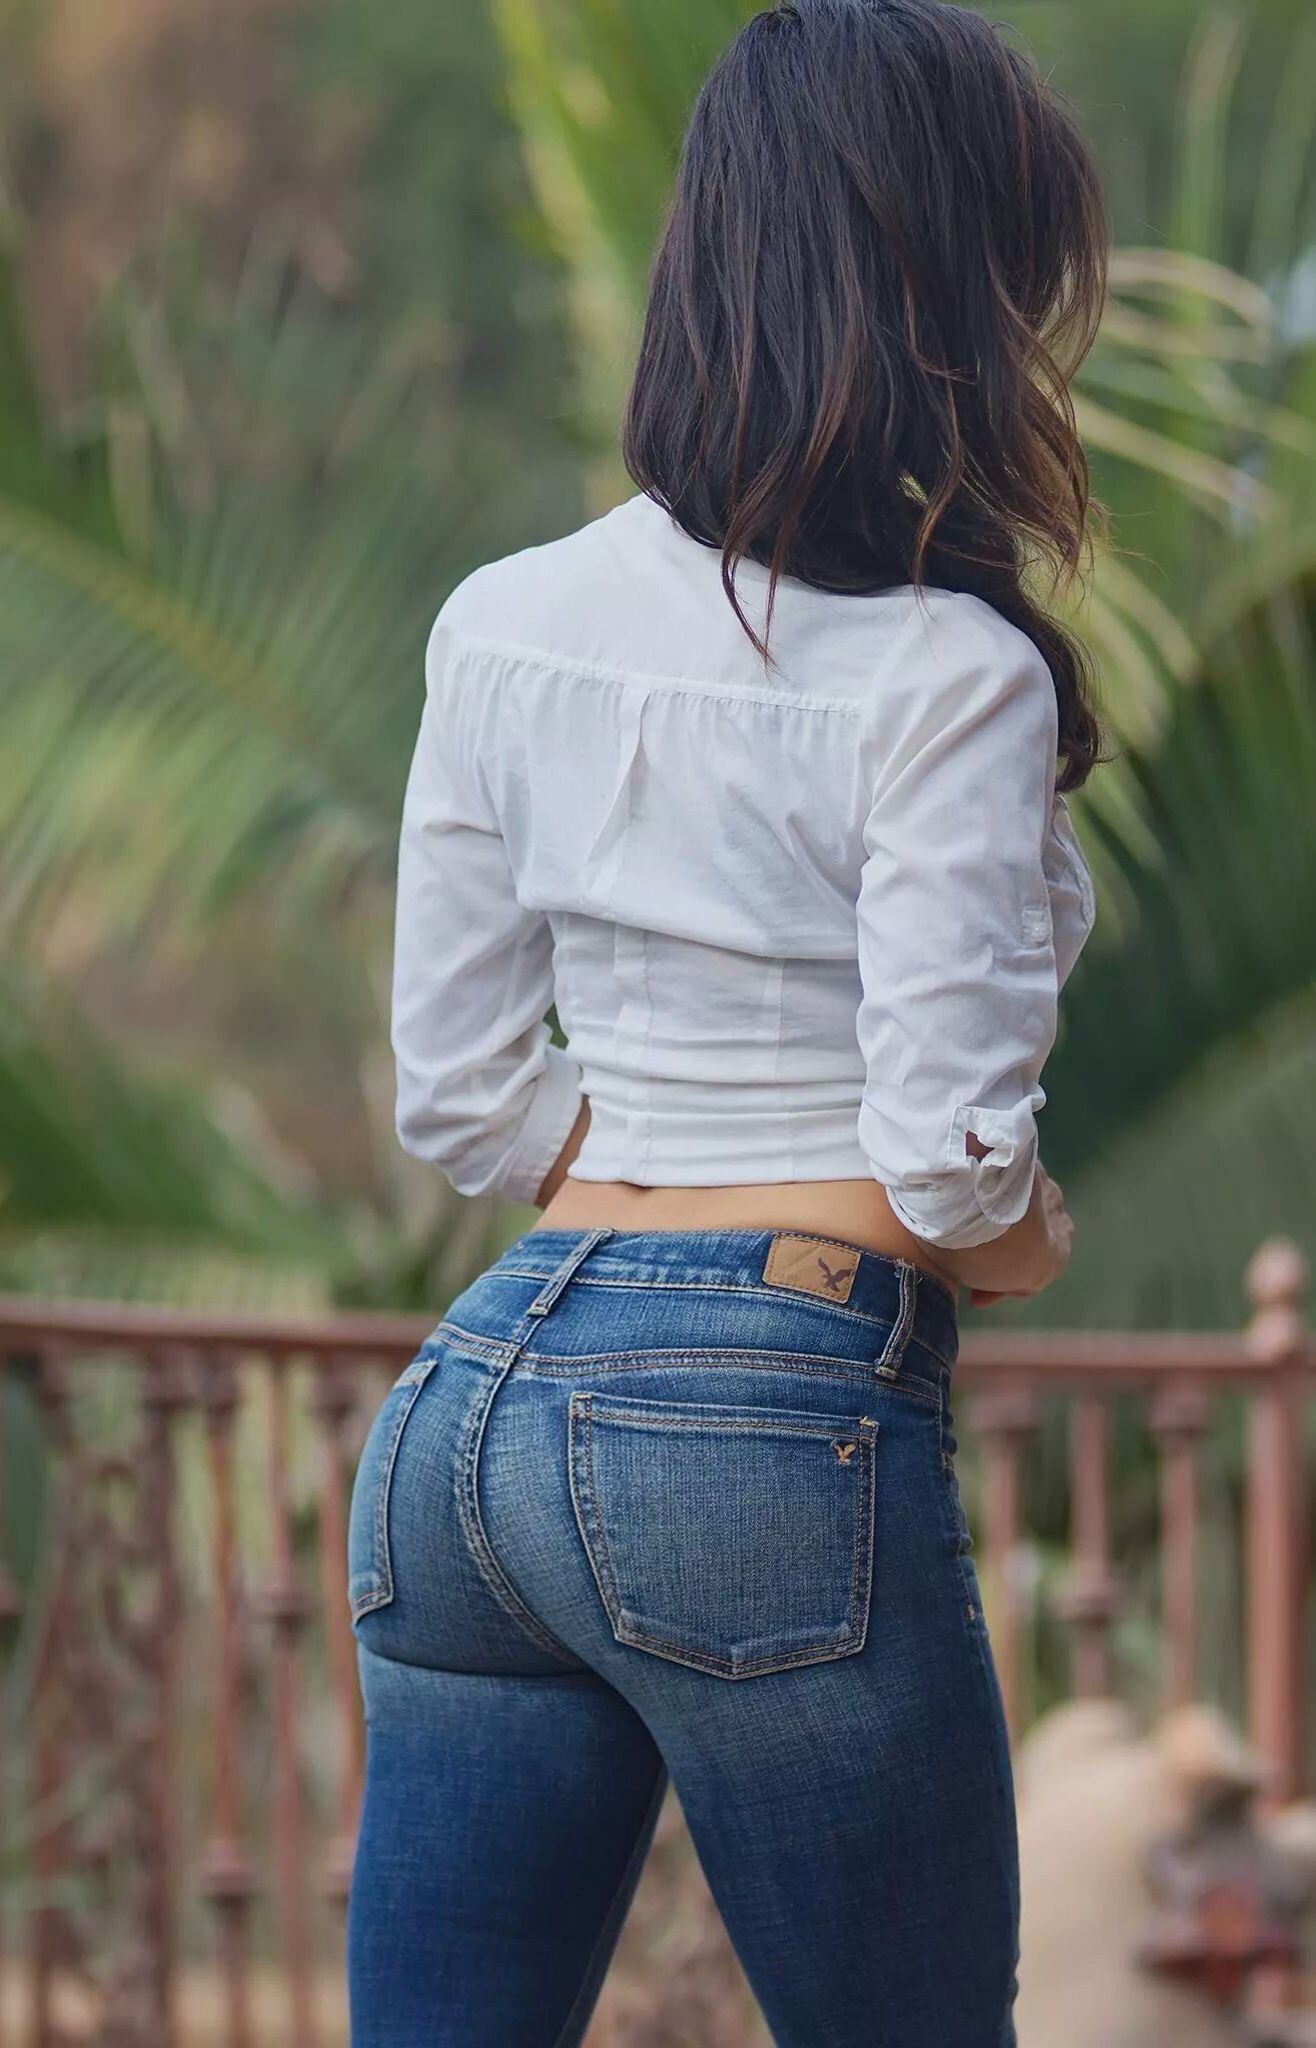 Girls And Their Tight Jeans